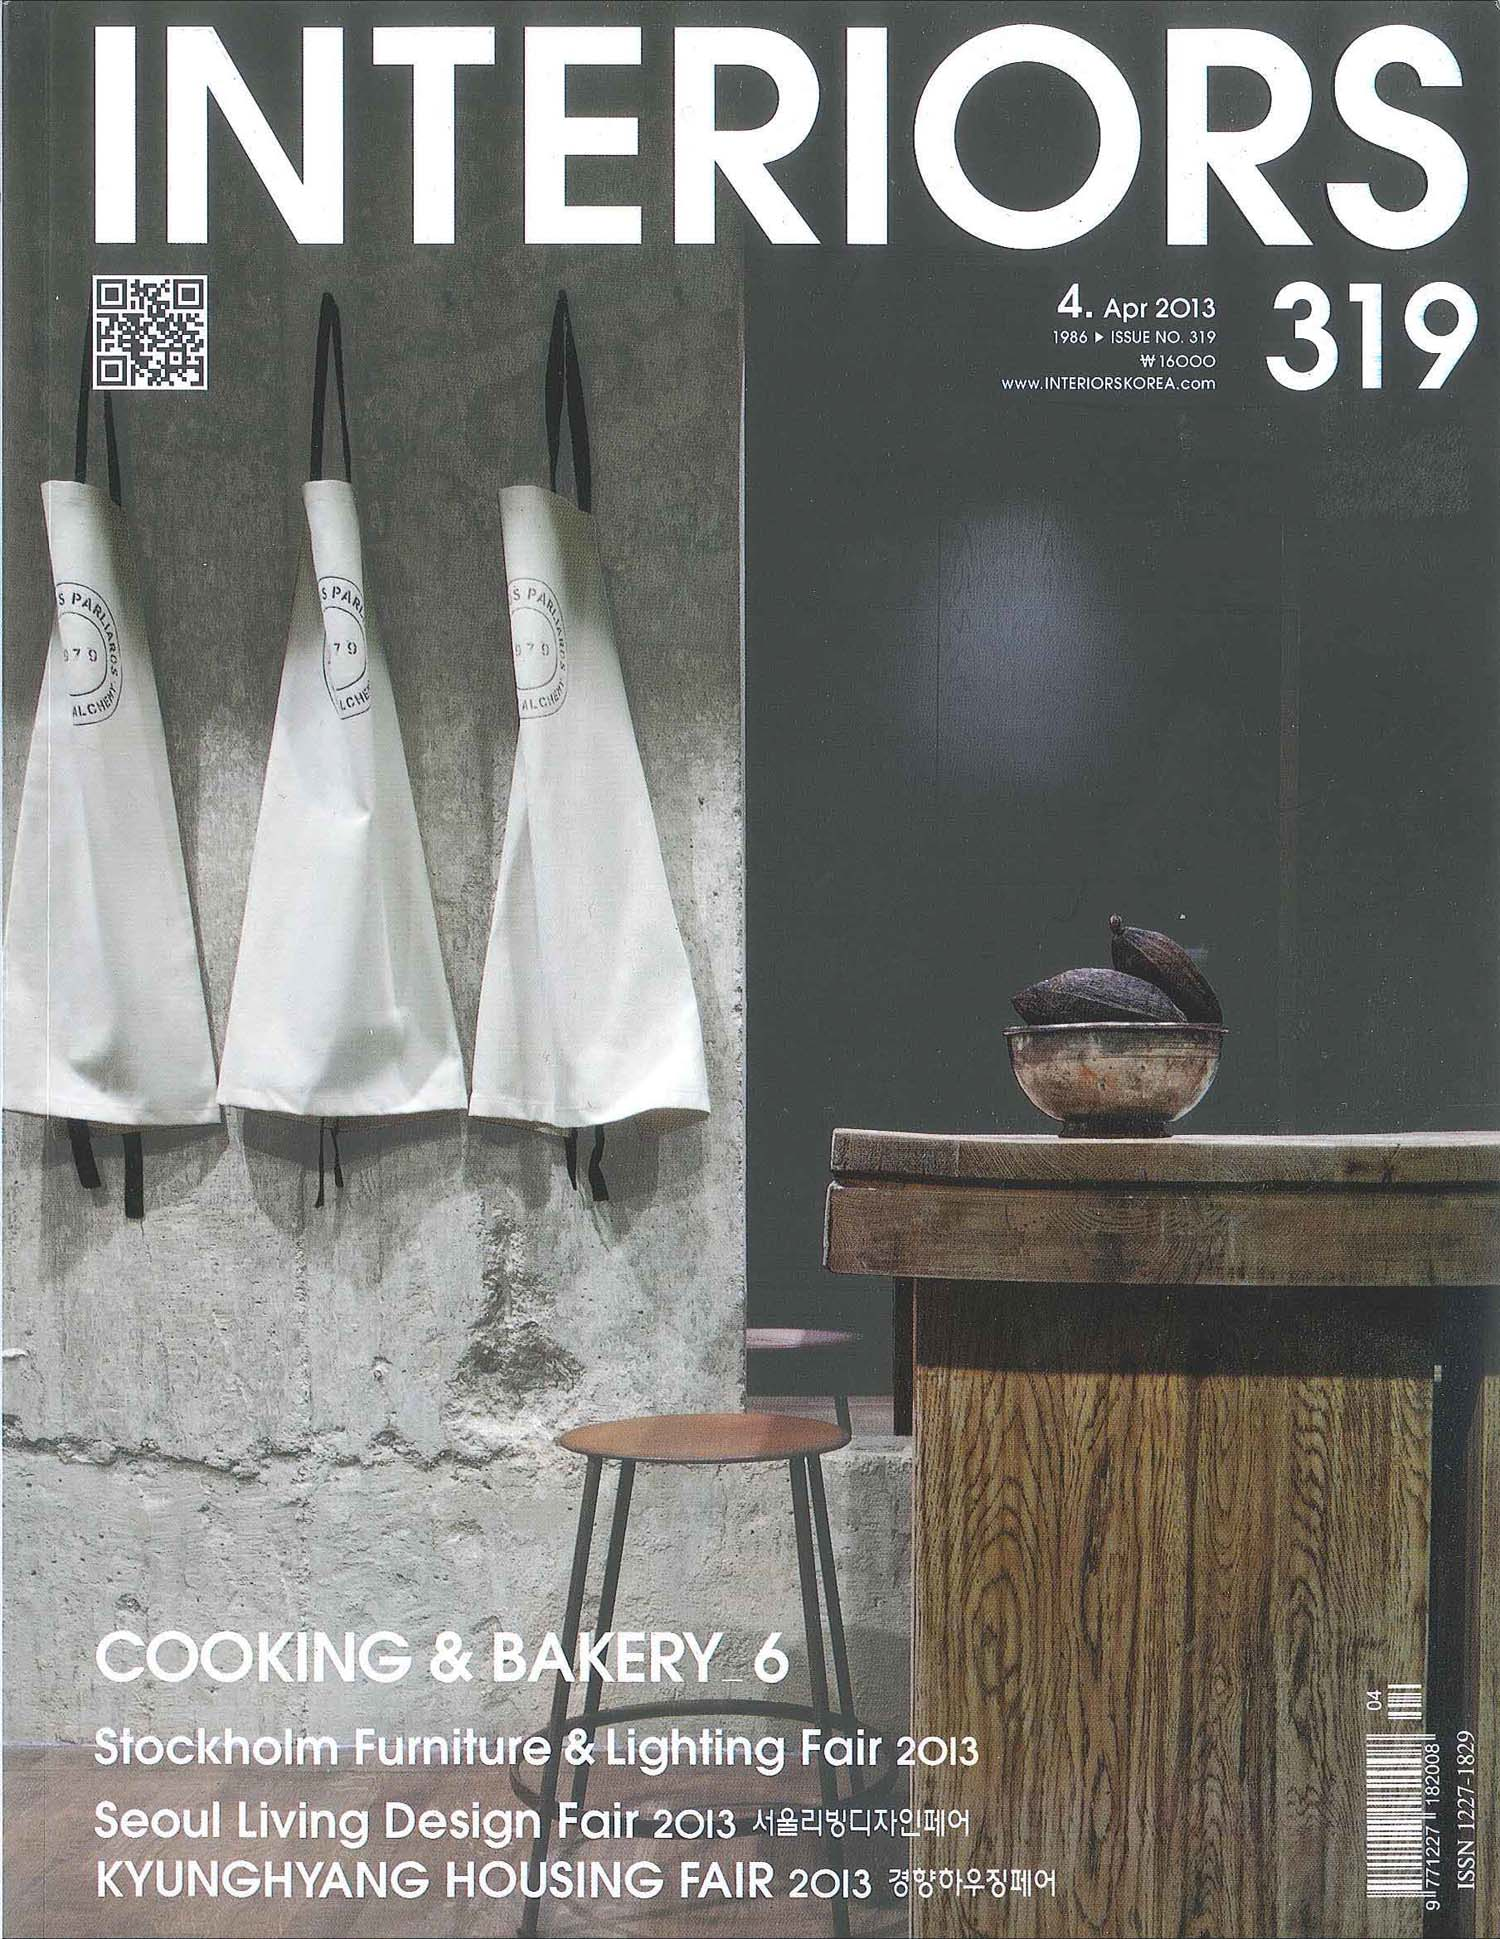 ABC Cooking Studio / Shanghai